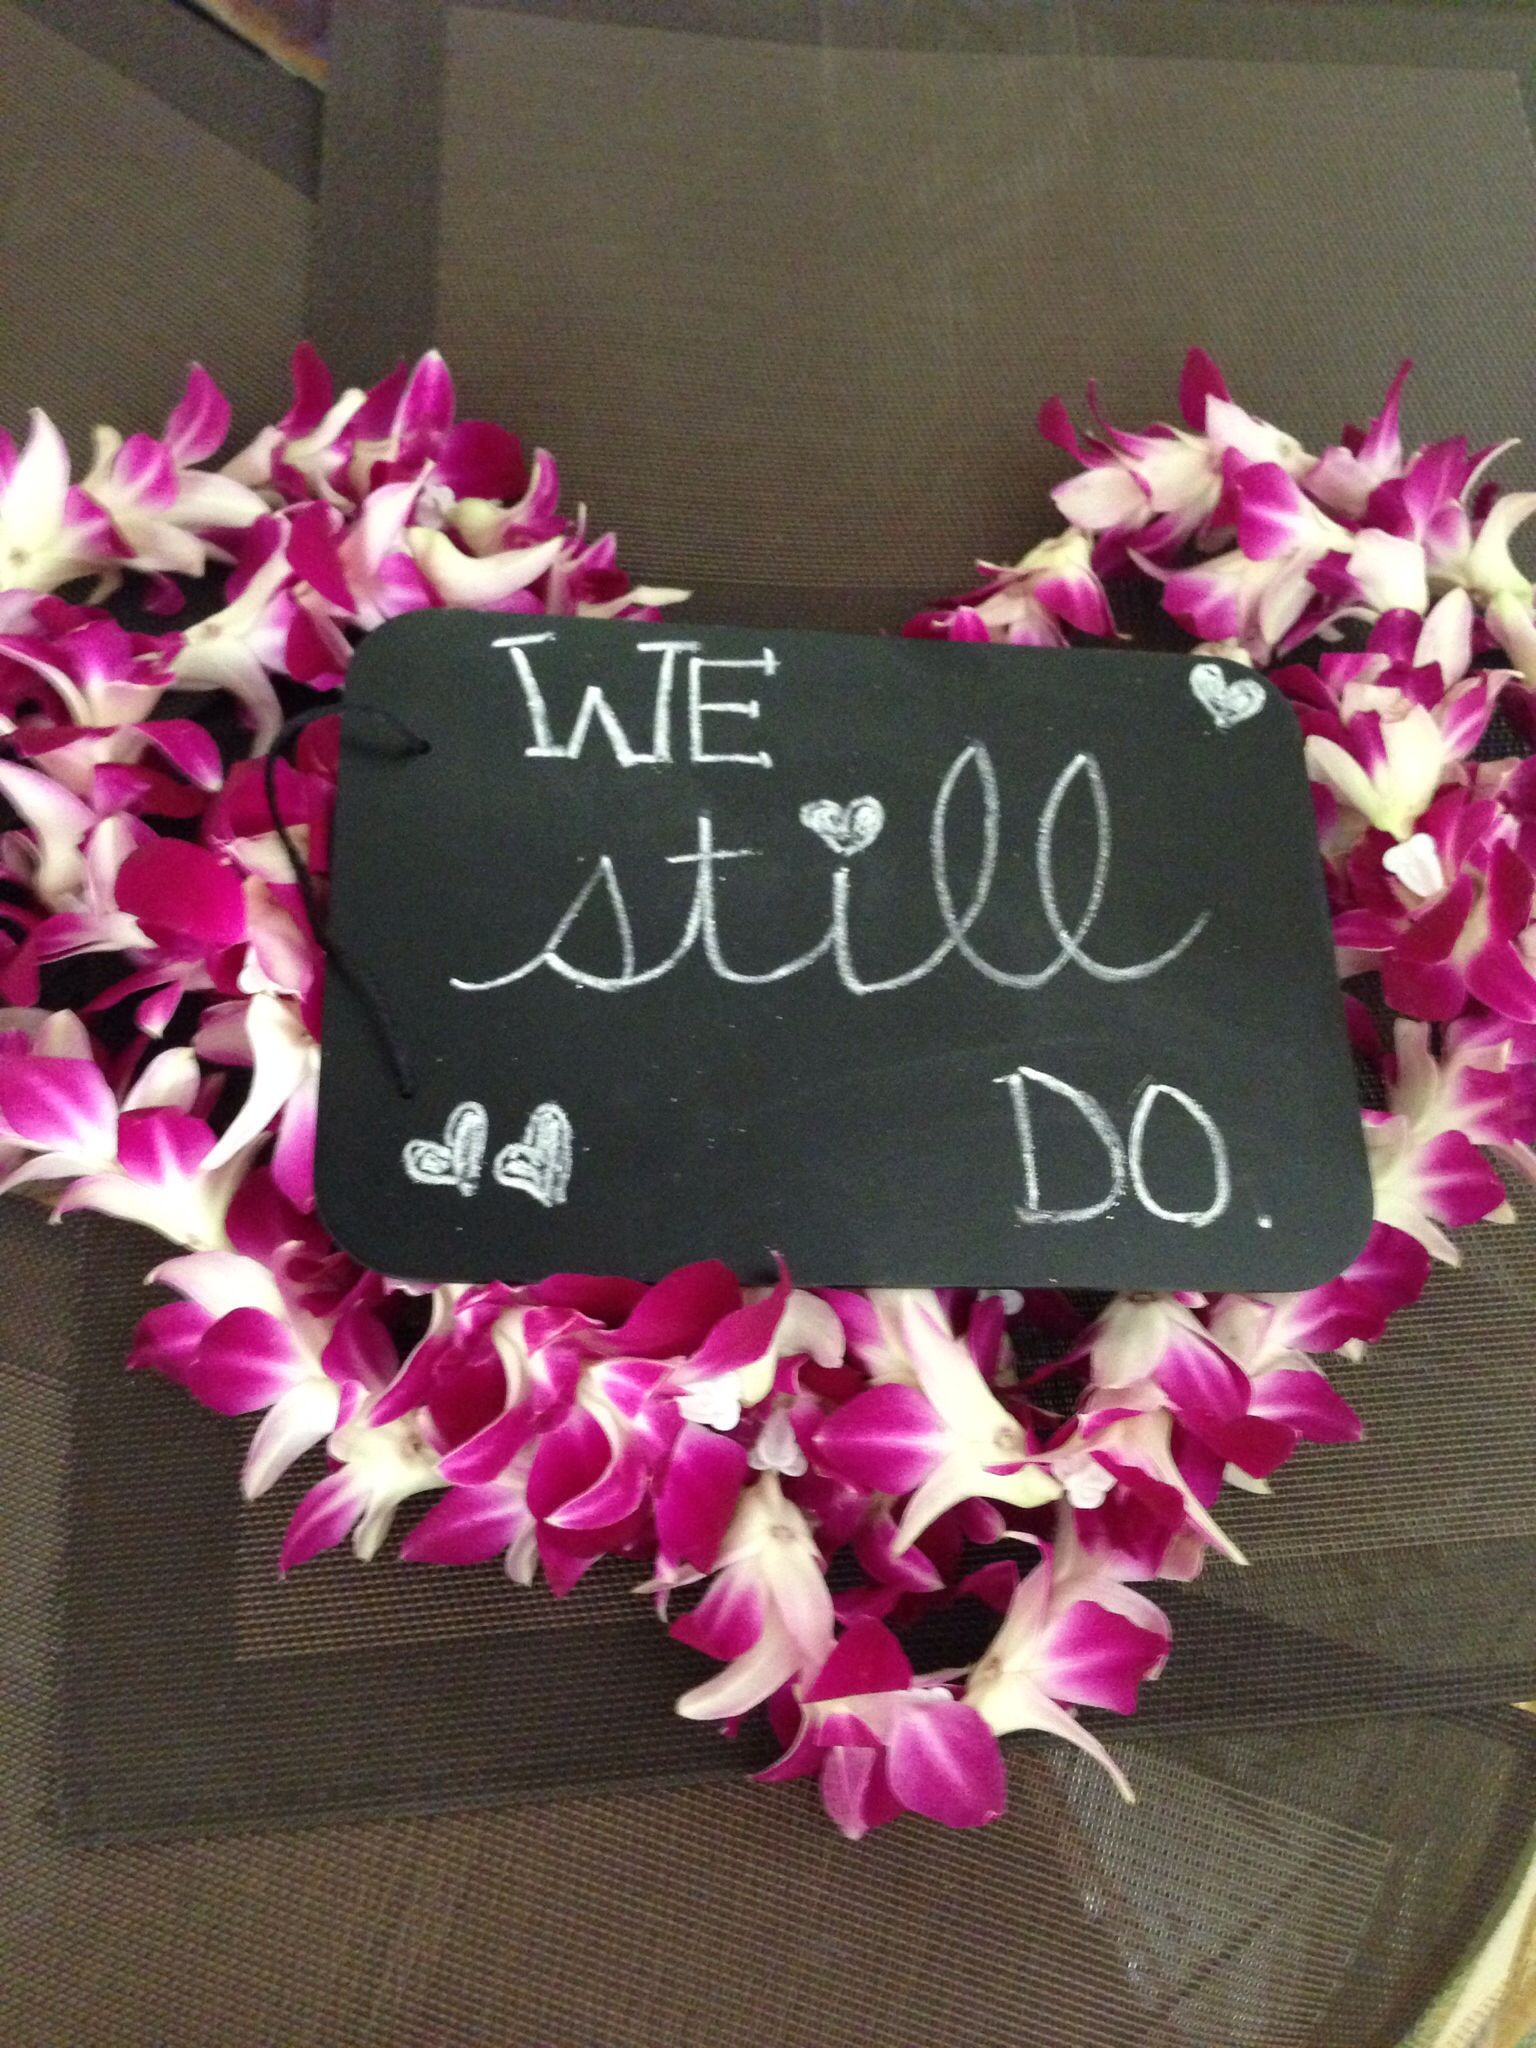 Ideas For Renewing Your Vows Wedding Showers And Celebration Of Lo